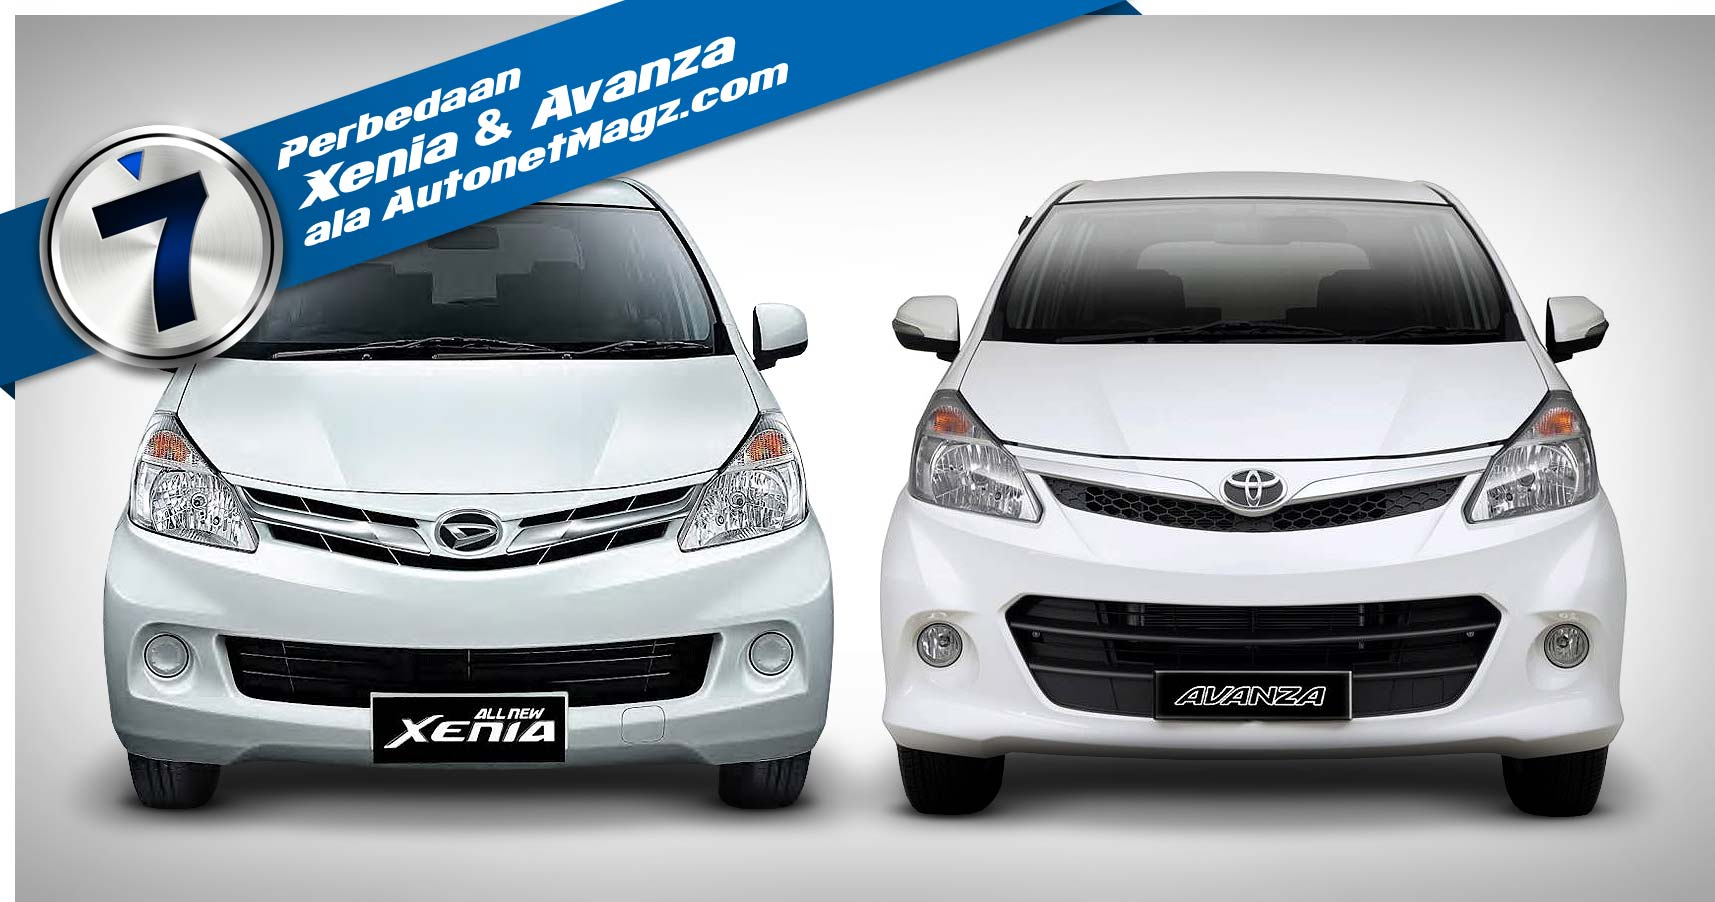 grand new avanza e mt 2018 harga all kijang innova 2016 type g download 72 lampu belakang bekas terbaru modispik